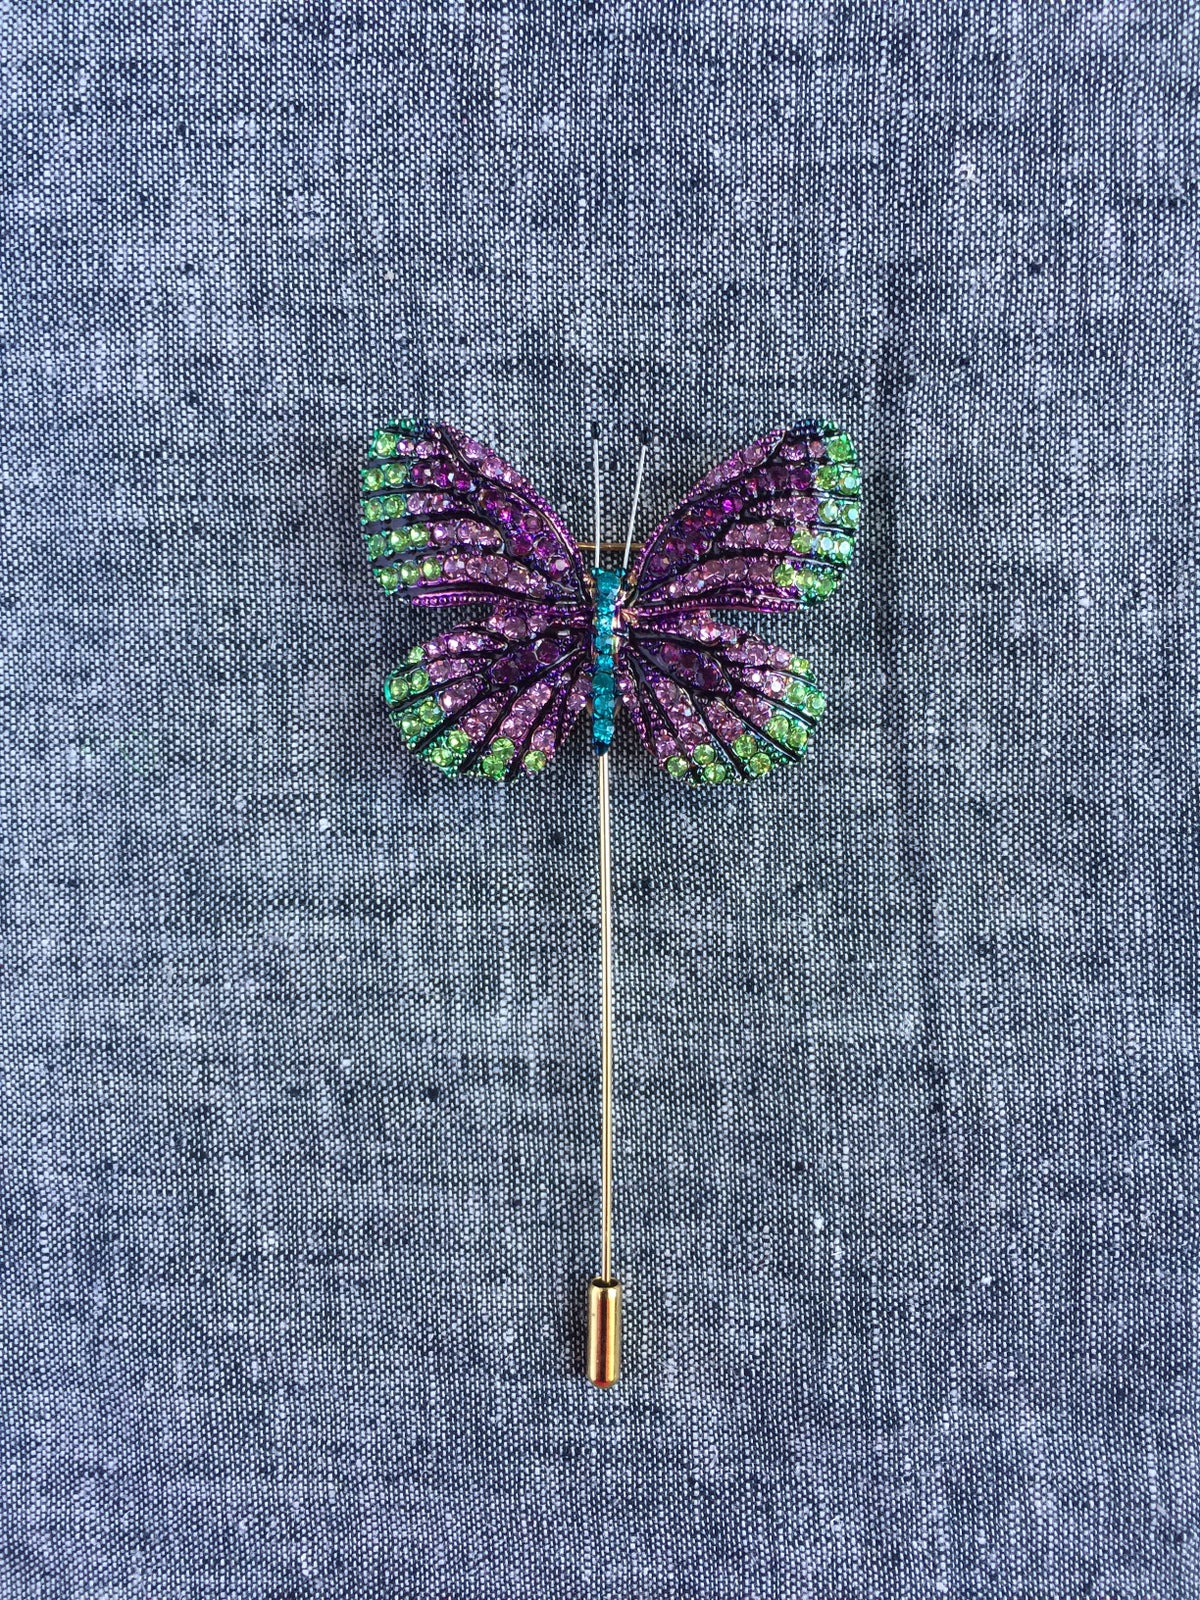 Image of Butterfly Lapel Pin (Purple, Green)